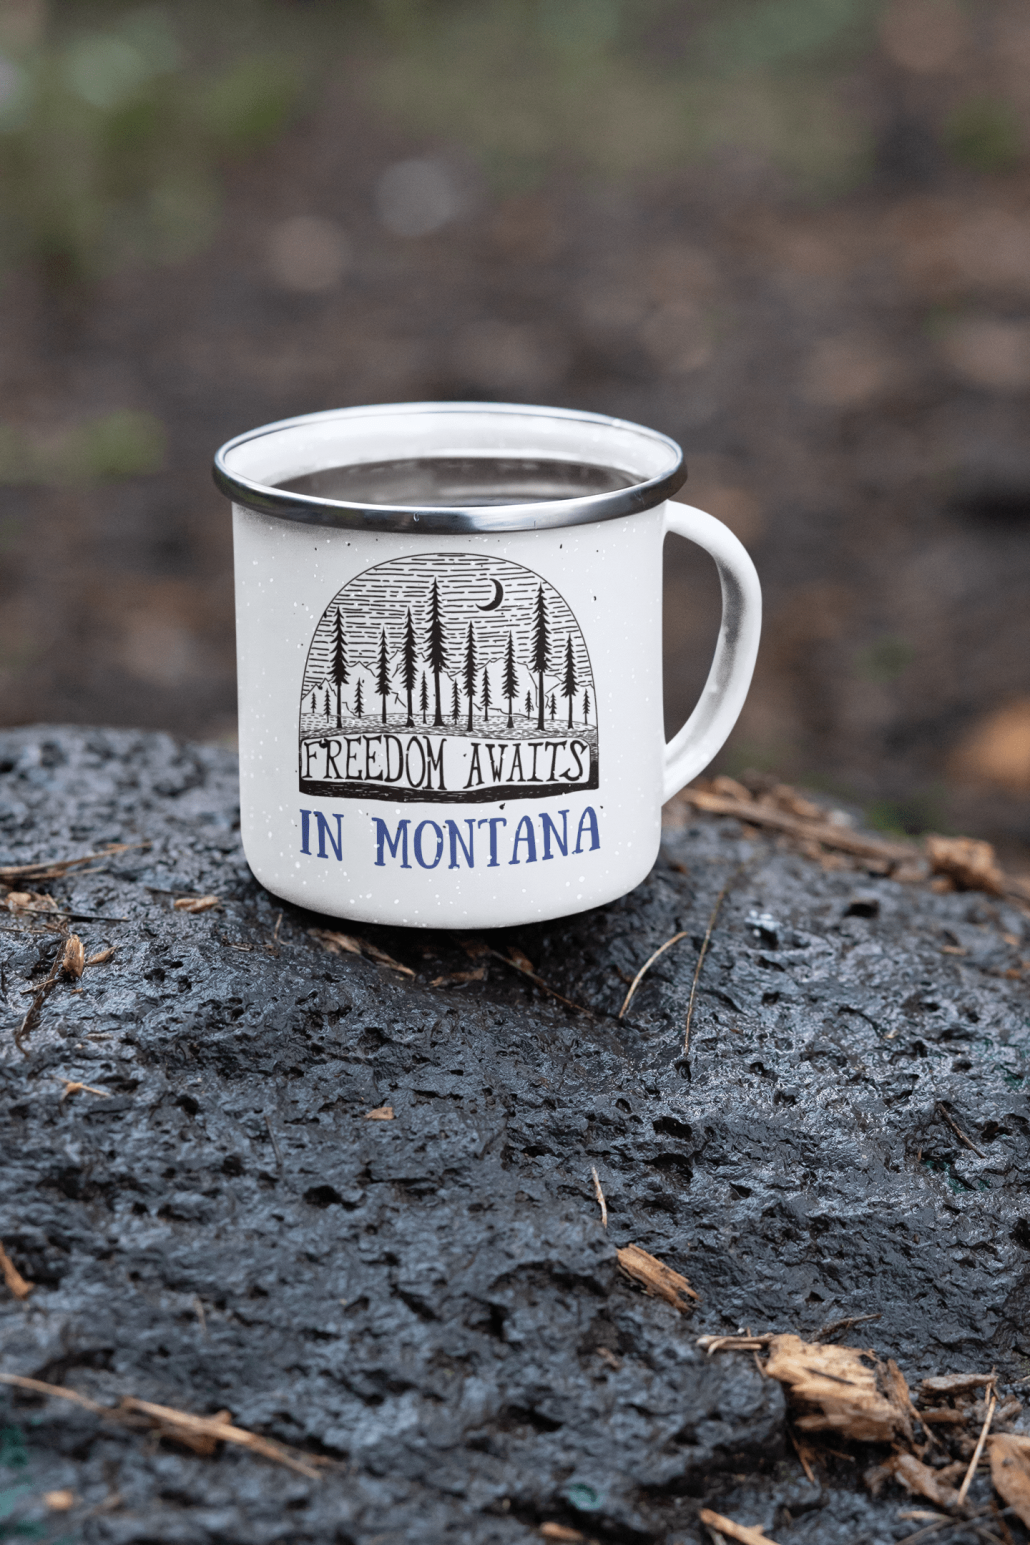 Custom camping mug on a stone in the wild